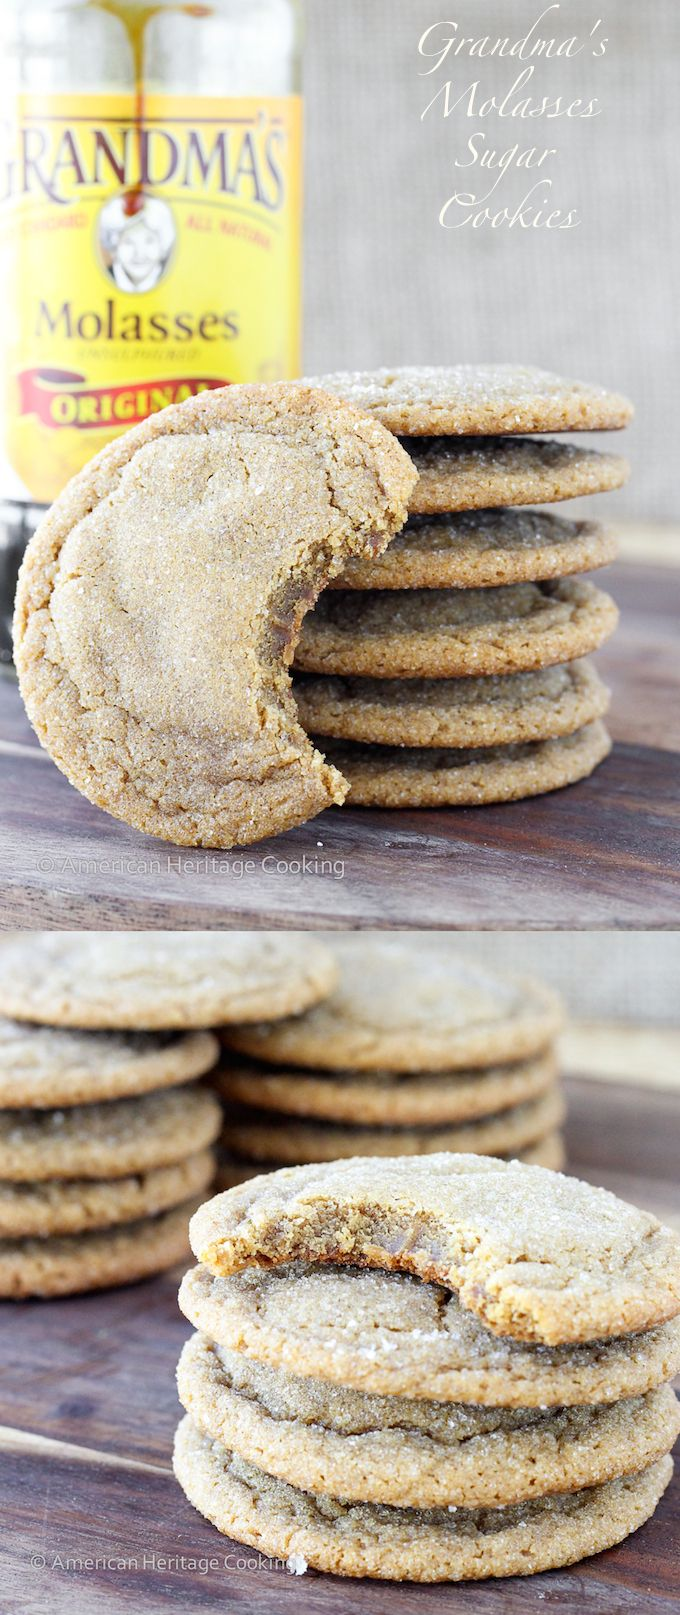 A recipe for my Grandma's Molasses Sugar Cookies | Crispy on the outside and chewy within! The perfect cross between a gingersnap, sugar cookie and gingerbread!